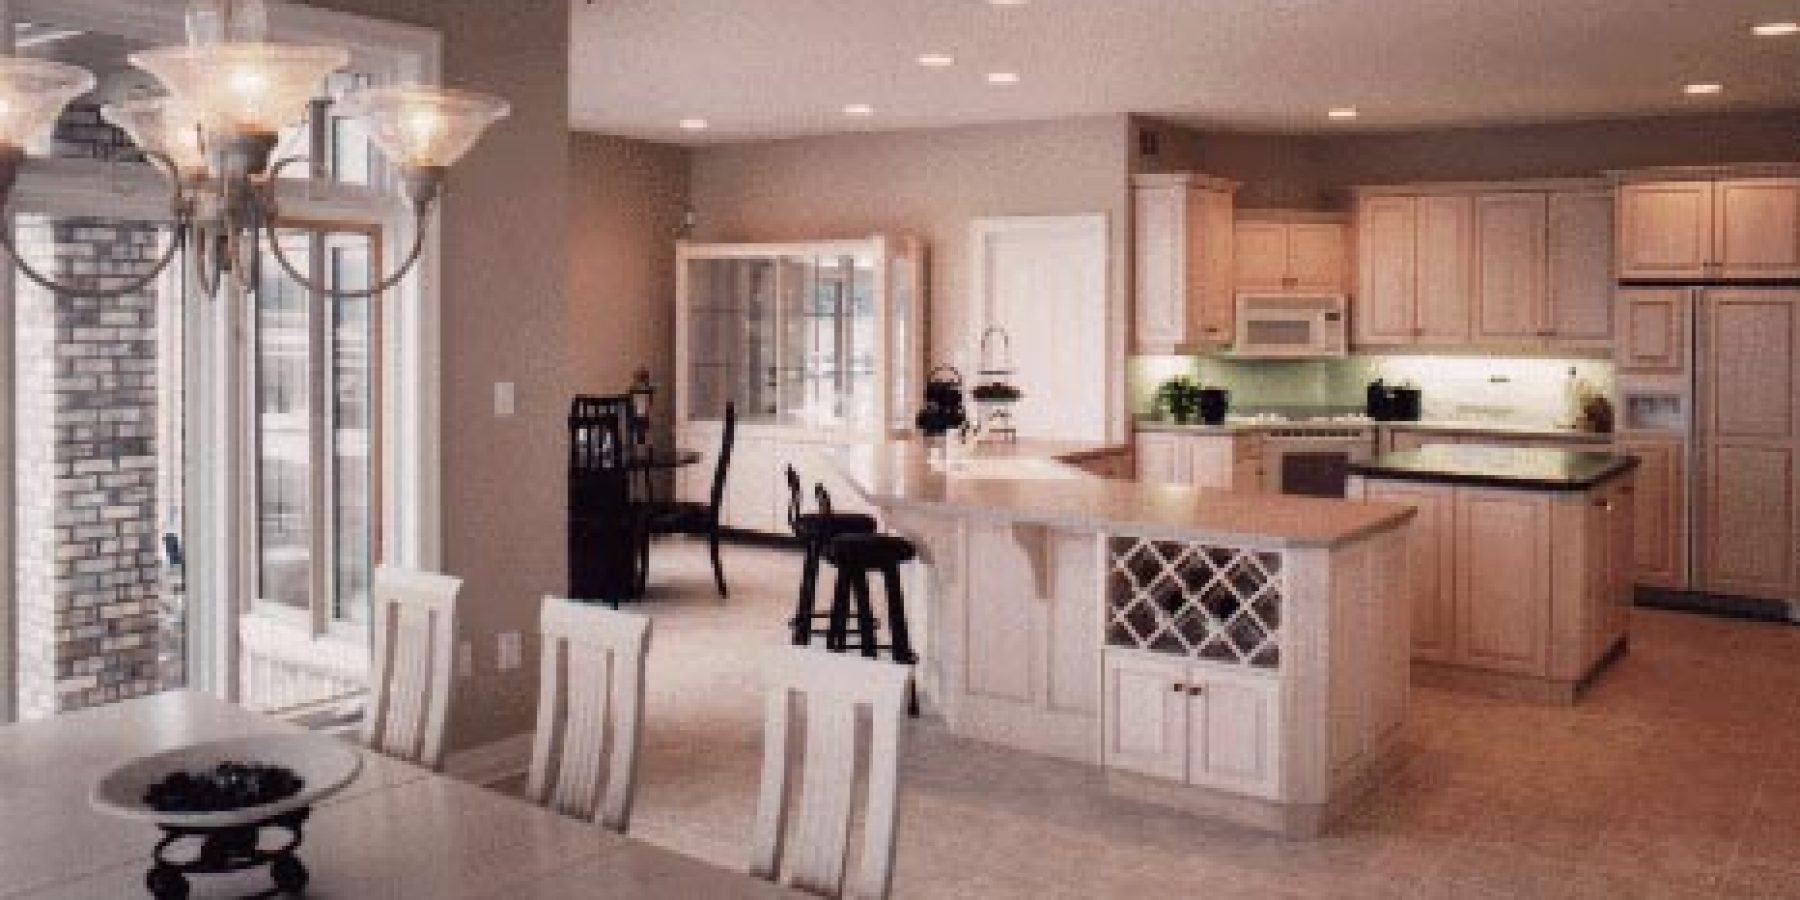 Allow us to create the perfect home that will embody your dreams.